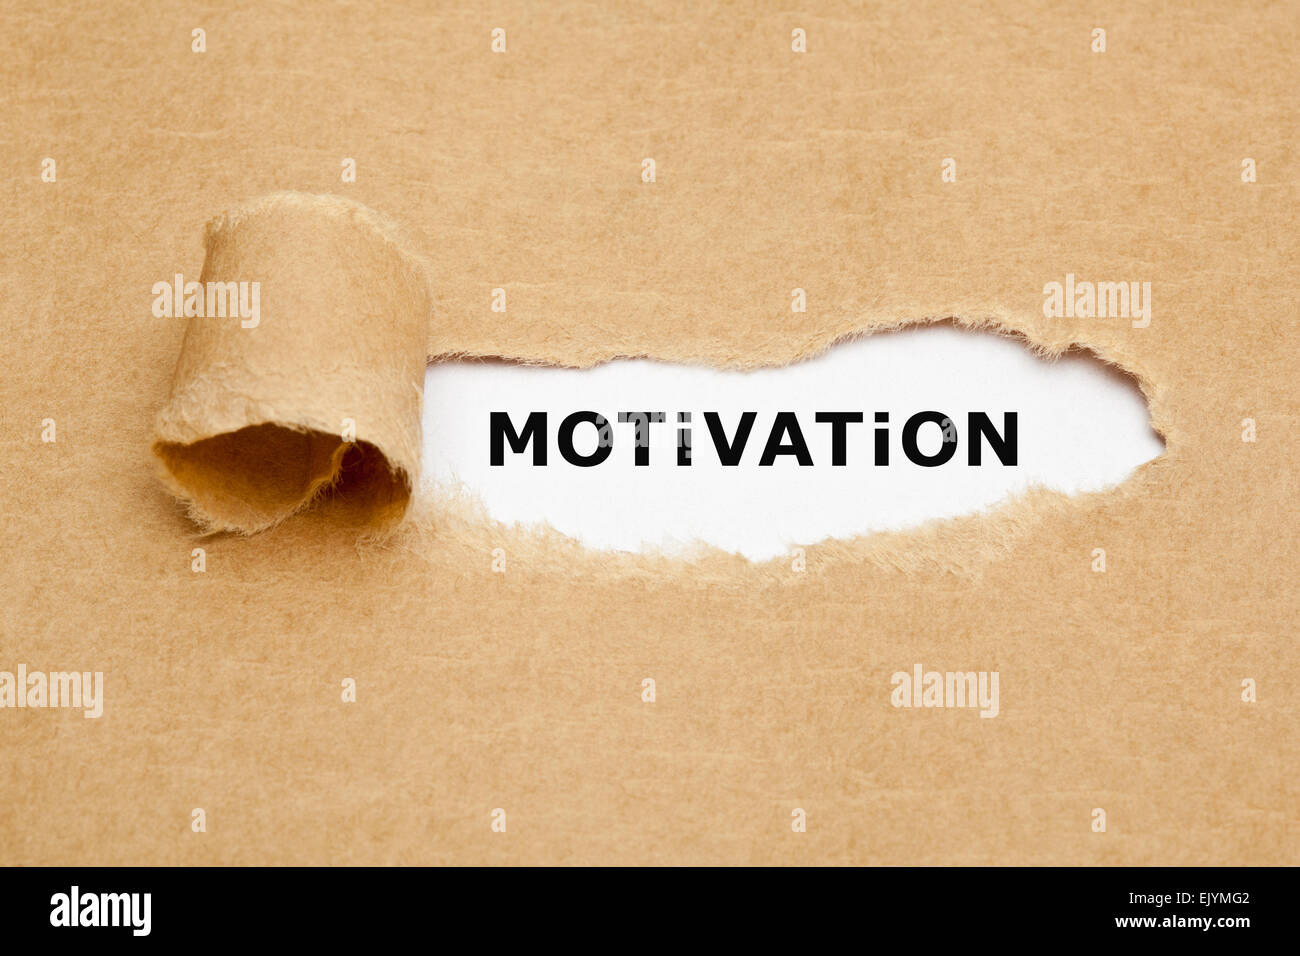 The word Motivation appearing behind torn brown paper. - Stock Image